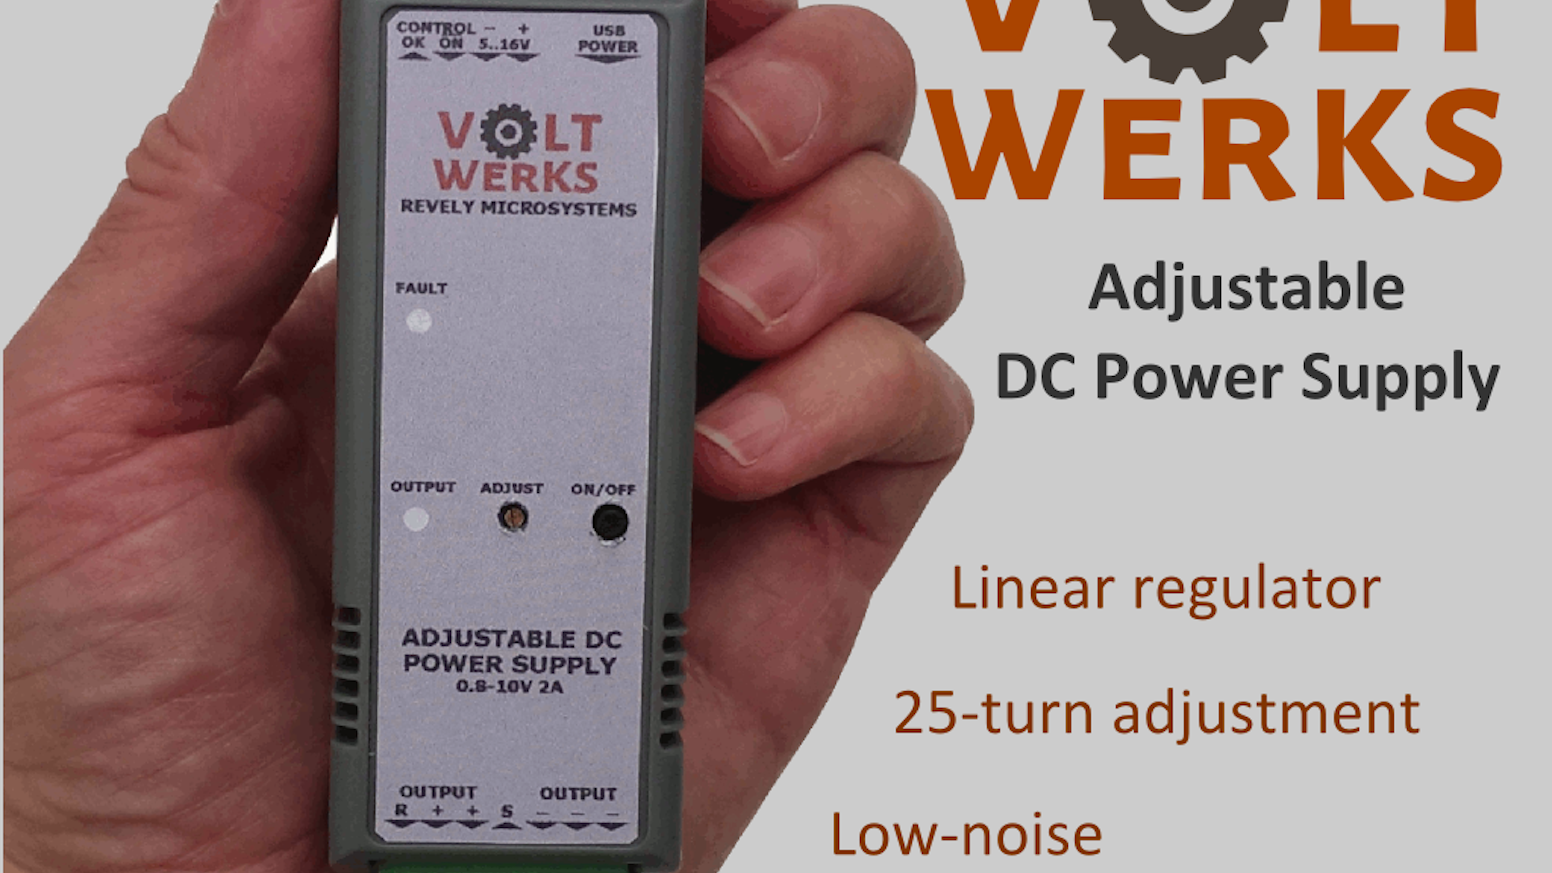 Voltwerks Precisely Adjustable Power Supply For Your Lab By Jon Picture Of Variable Voltage Regulator Filtered Linear